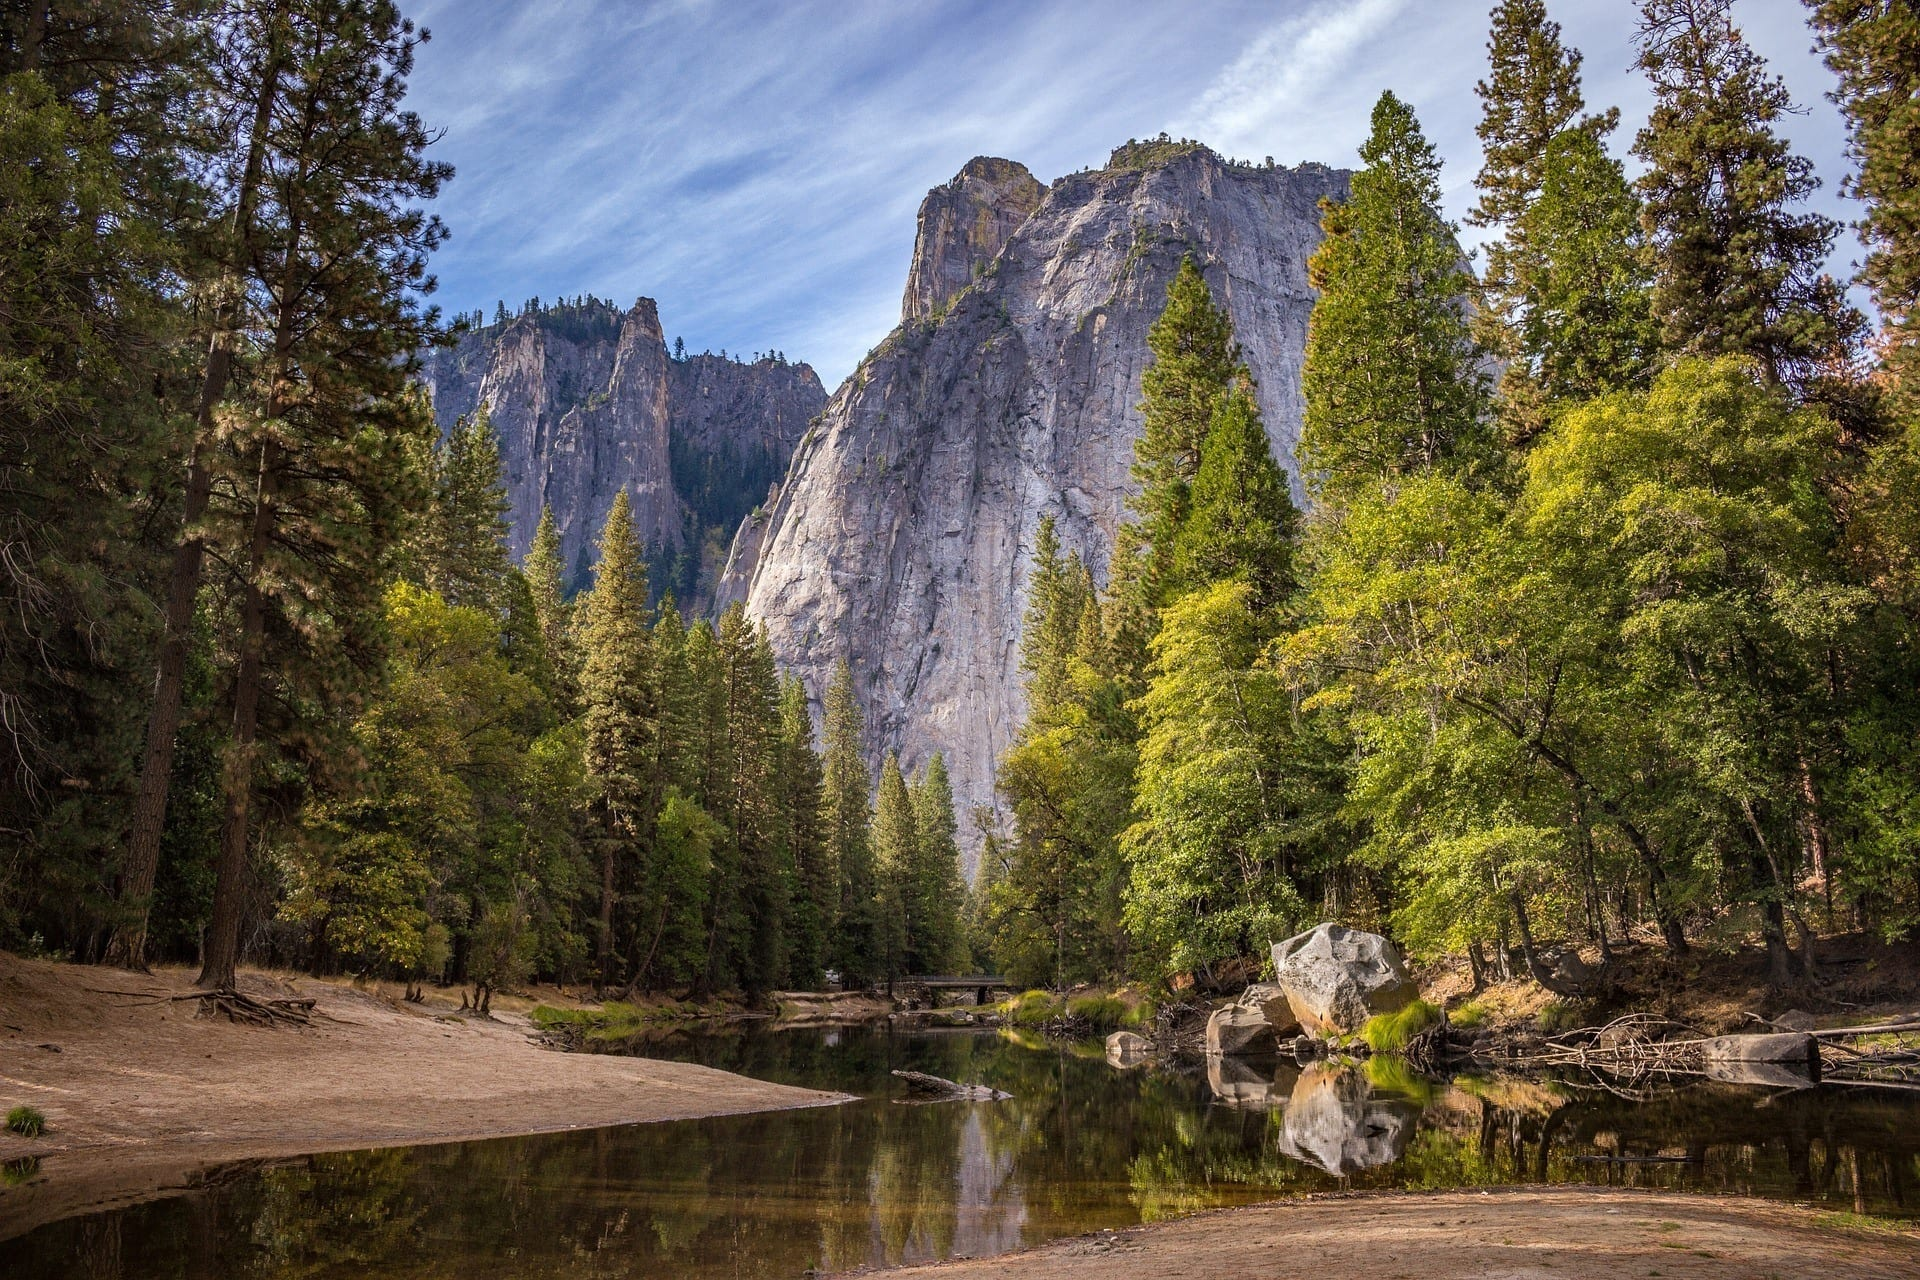 Yosemite National Park has huge looming mountains in the background underneath a blue and white streaky sky. There are bright green evergreen trees and water on the ground amongst the brown land.